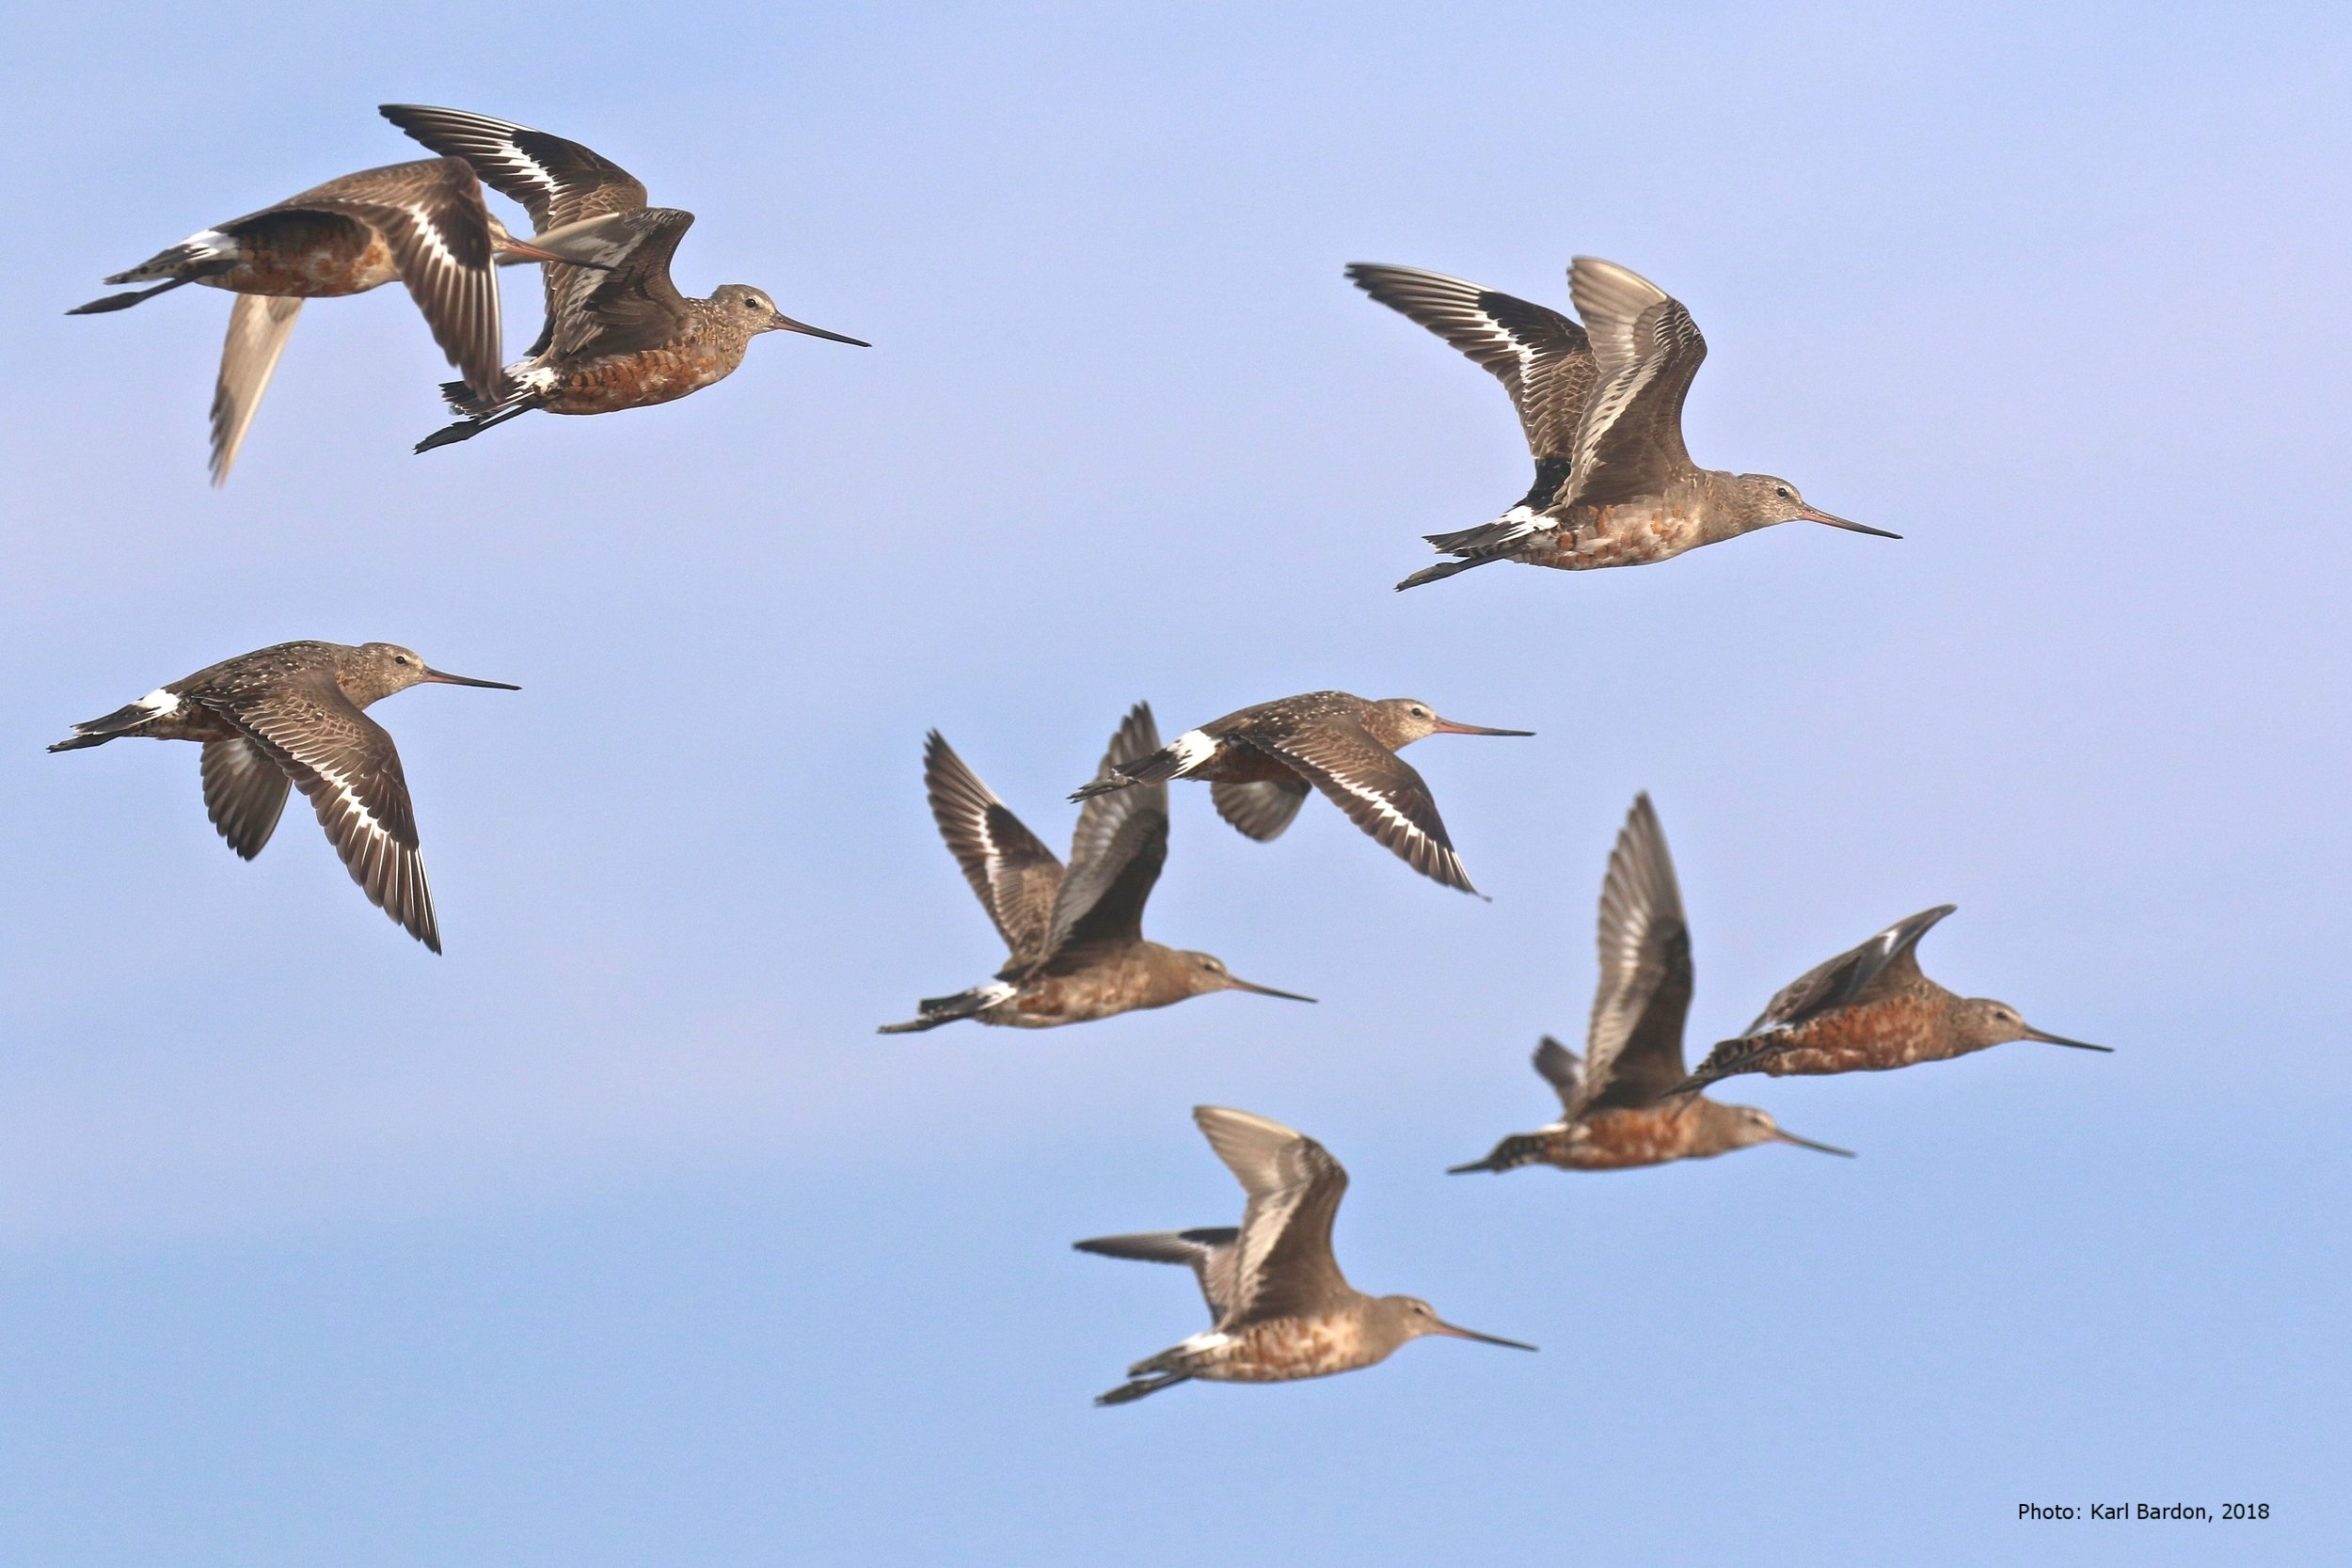 Hudsonian Godwits in flight. Photo courtesy of Karl Bardon.